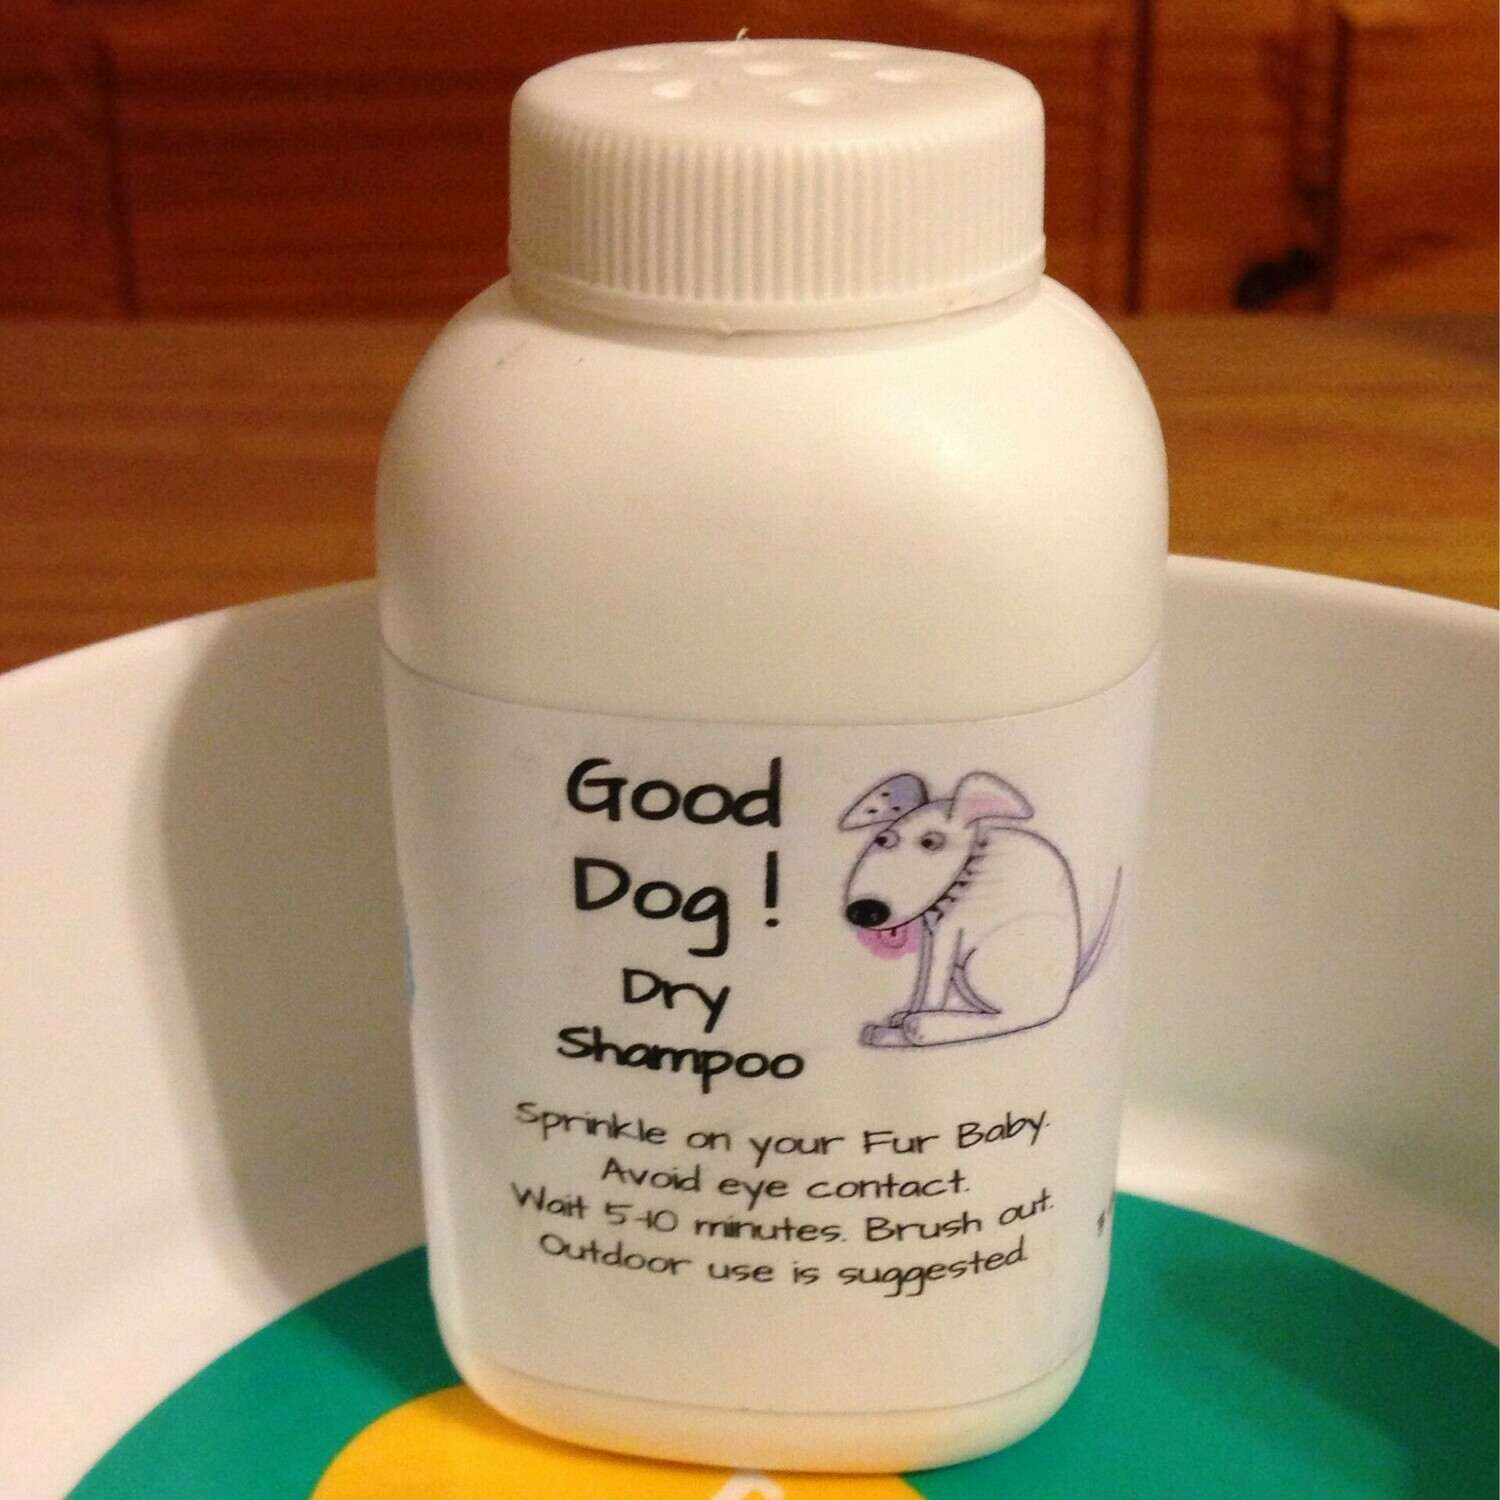 Good Dog Dry Shampoo 4 oz